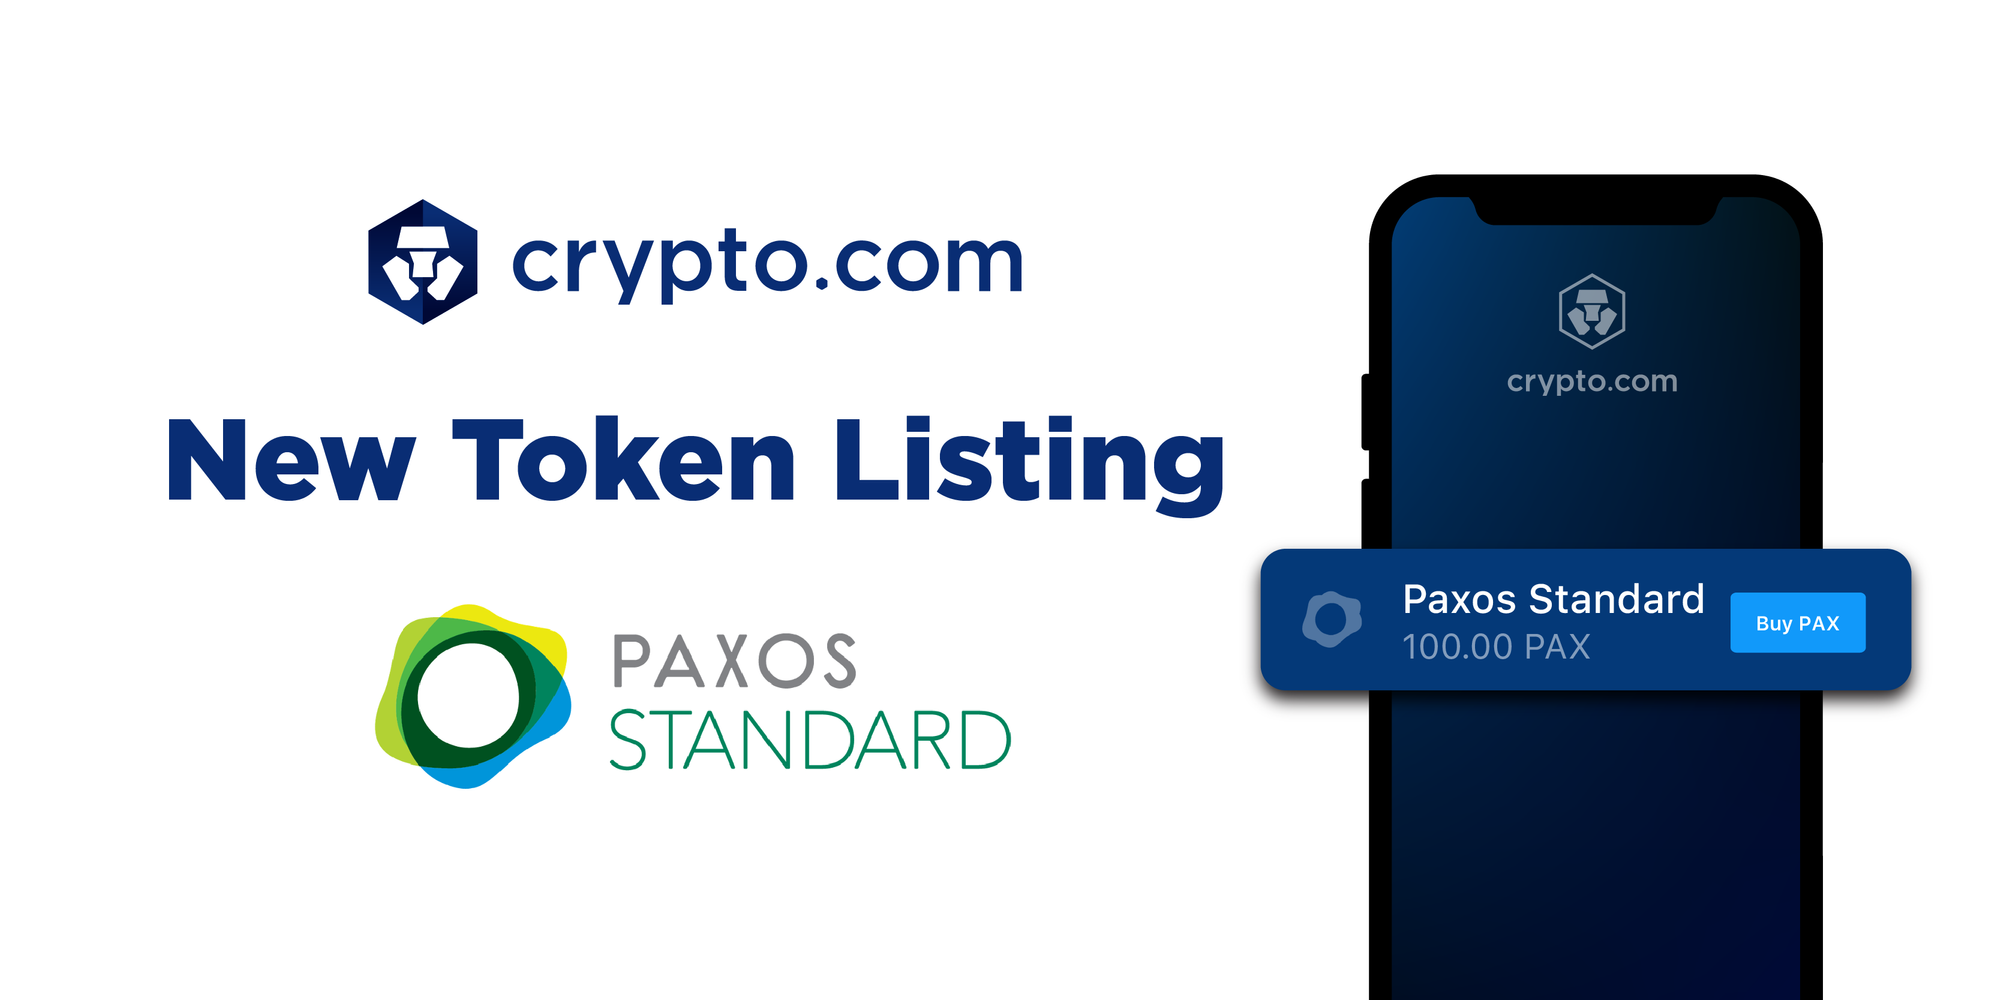 where to buy pax cryptocurrency